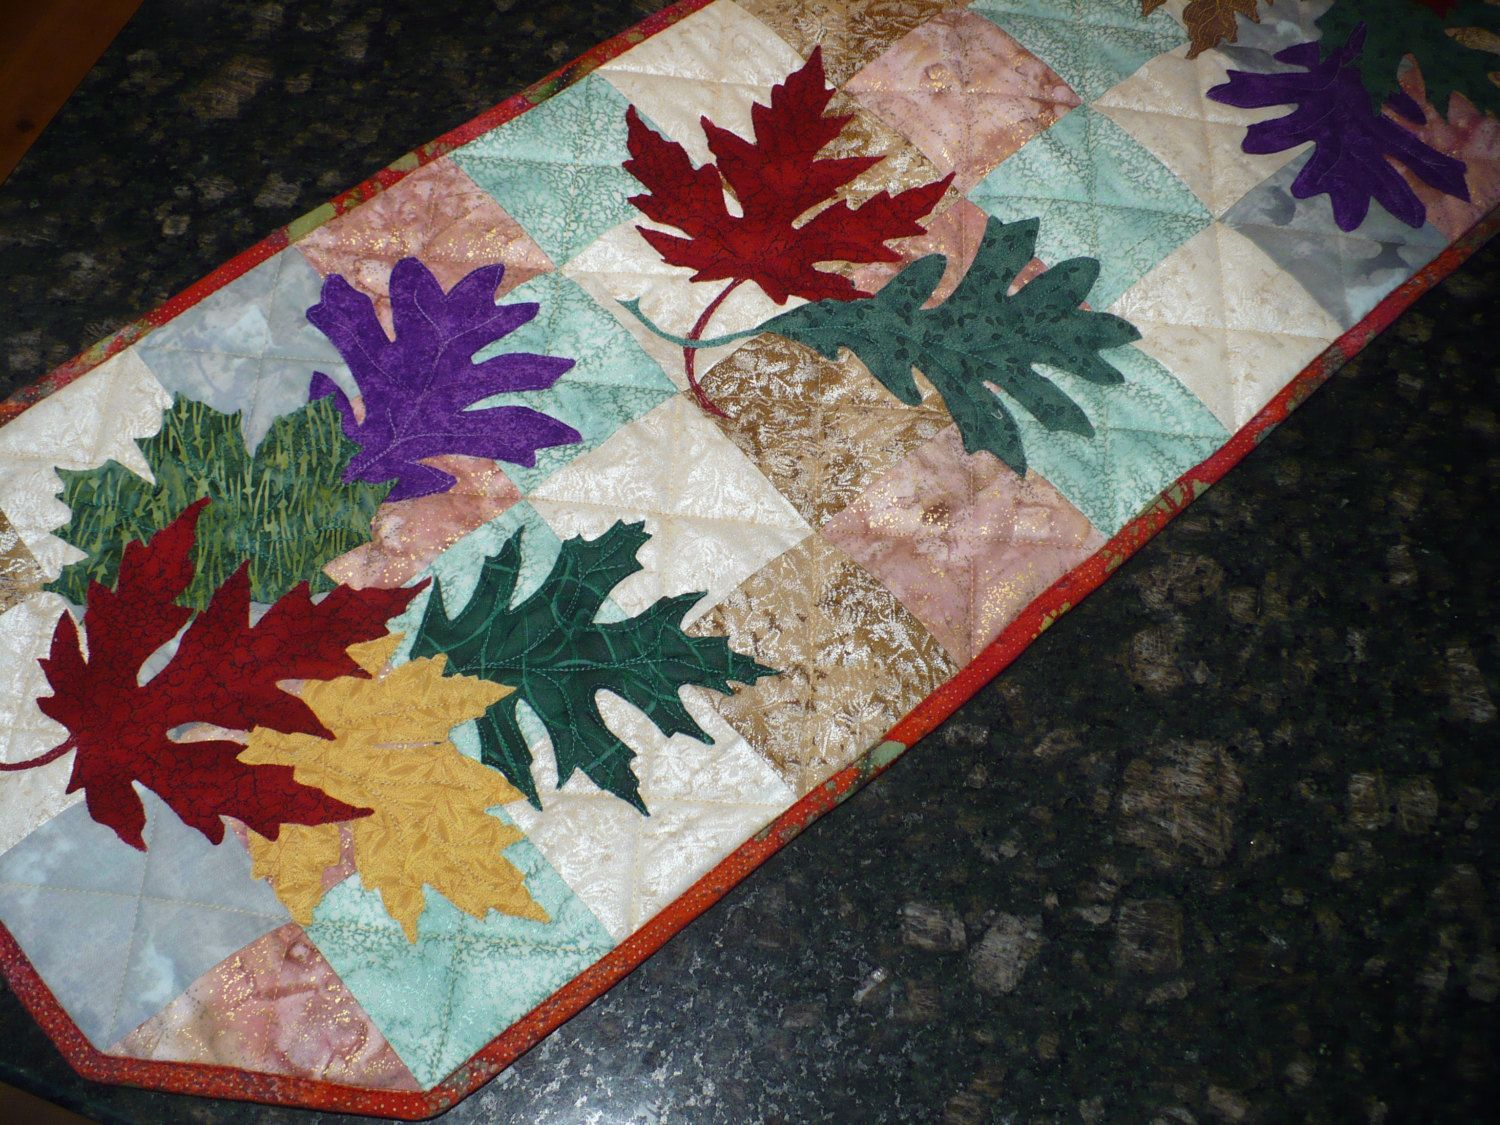 Fall Leaves Applique Table Runner Raw Edge Appliqued Leaves Machine Quilted In Soft Pastels Fall Wall Hanging Fall Dresser Runner Applique Table Runner Raw Edge Applique Machine Quilting